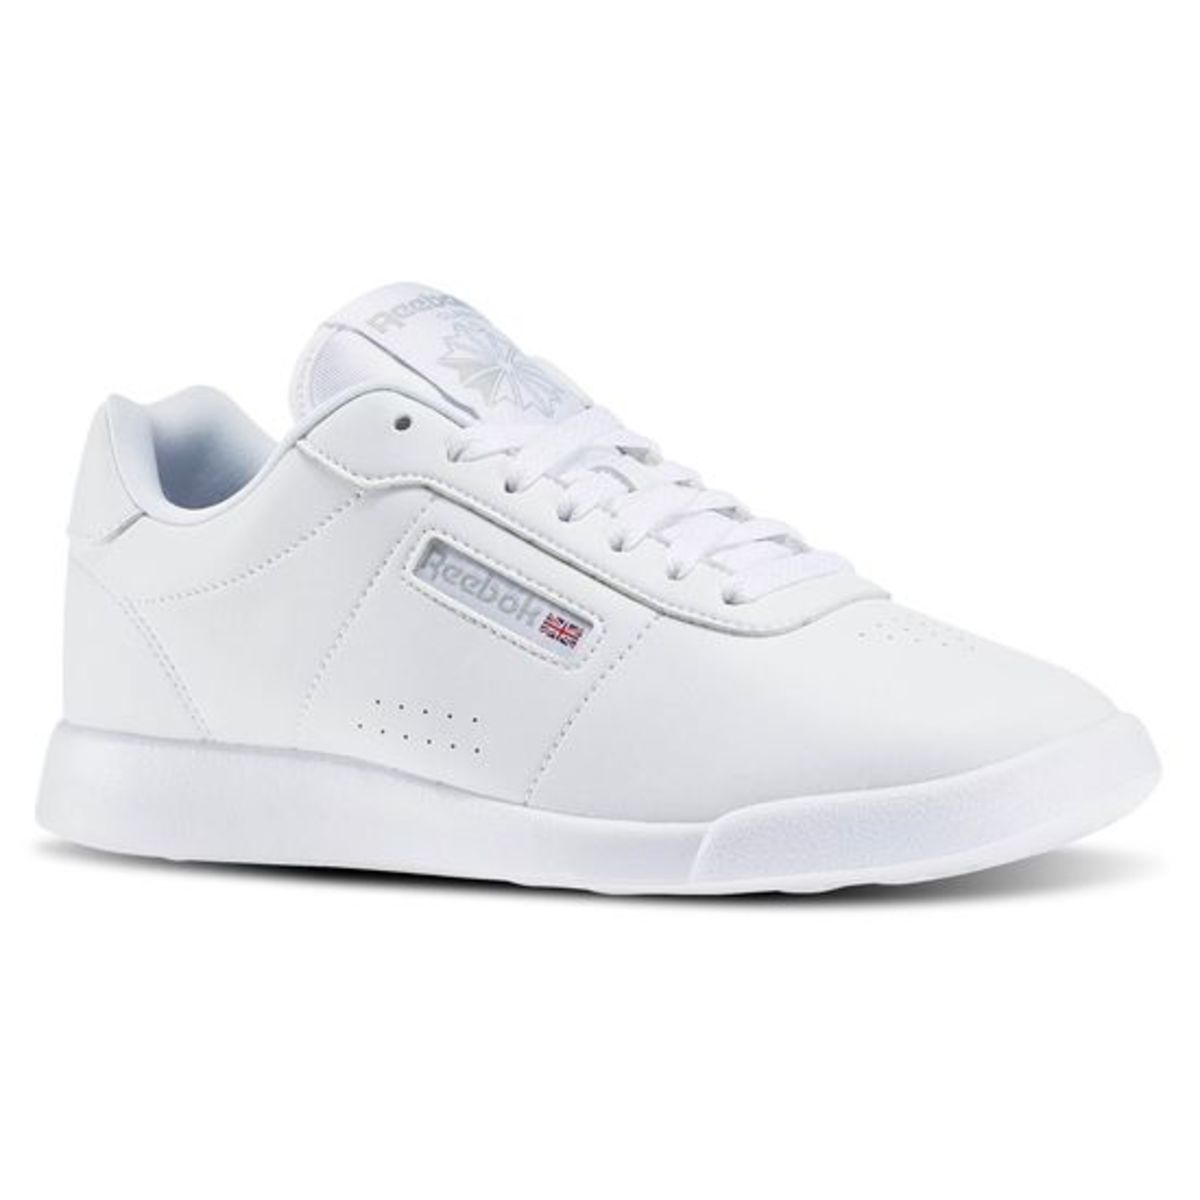 9d2ef54456447 Buy urban outfitters reebok club c